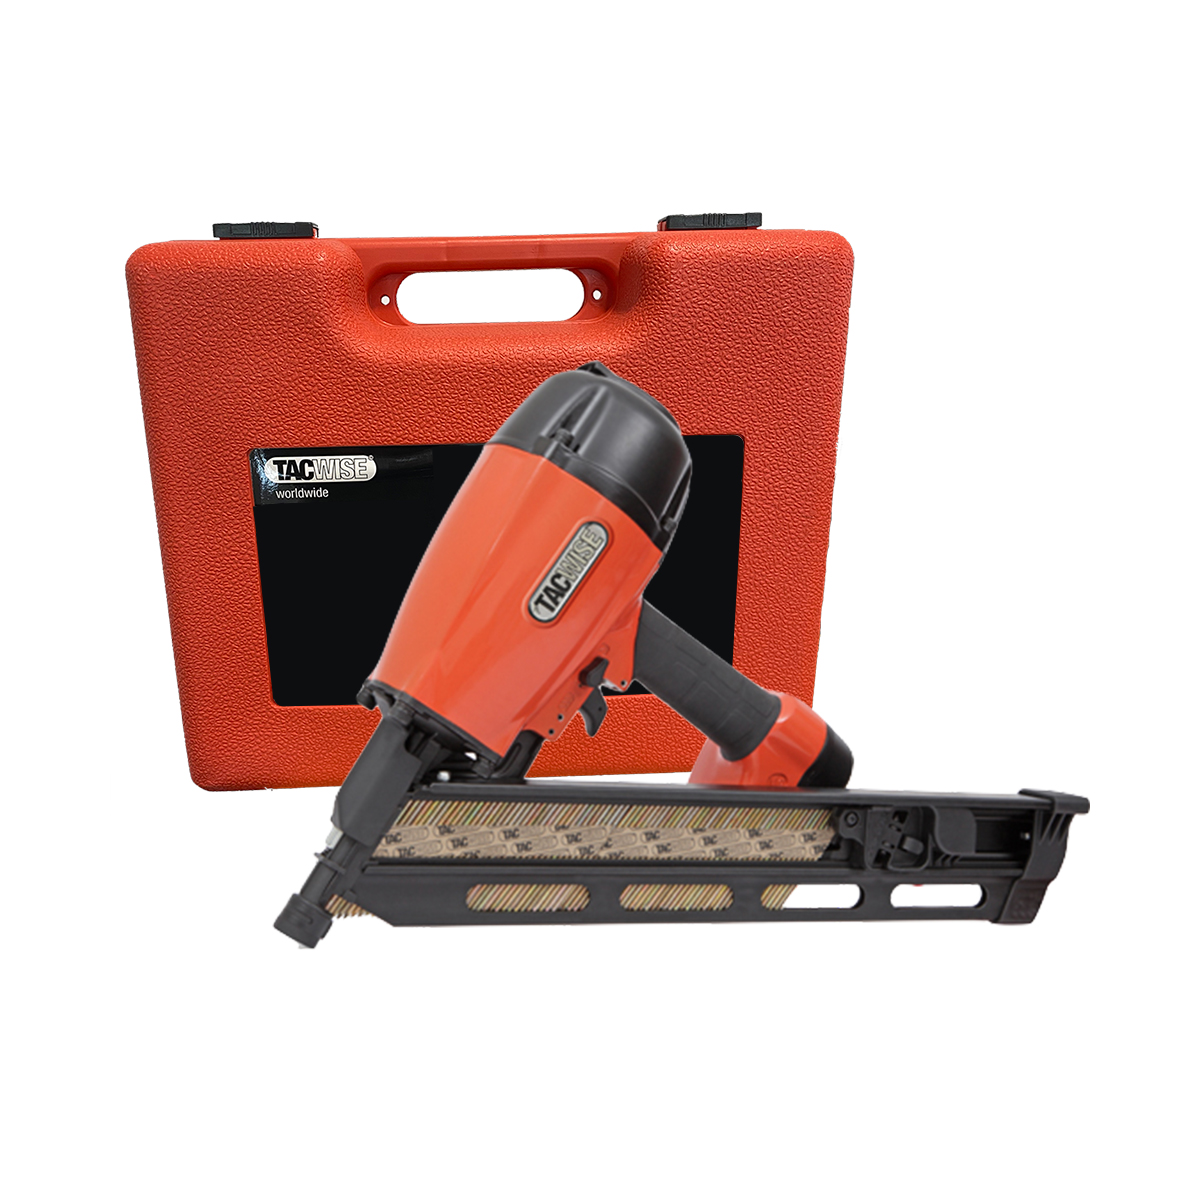 Tacwise KDH90V 90mm Heavy Duty Angled Air Strip Nailer with Carry Case